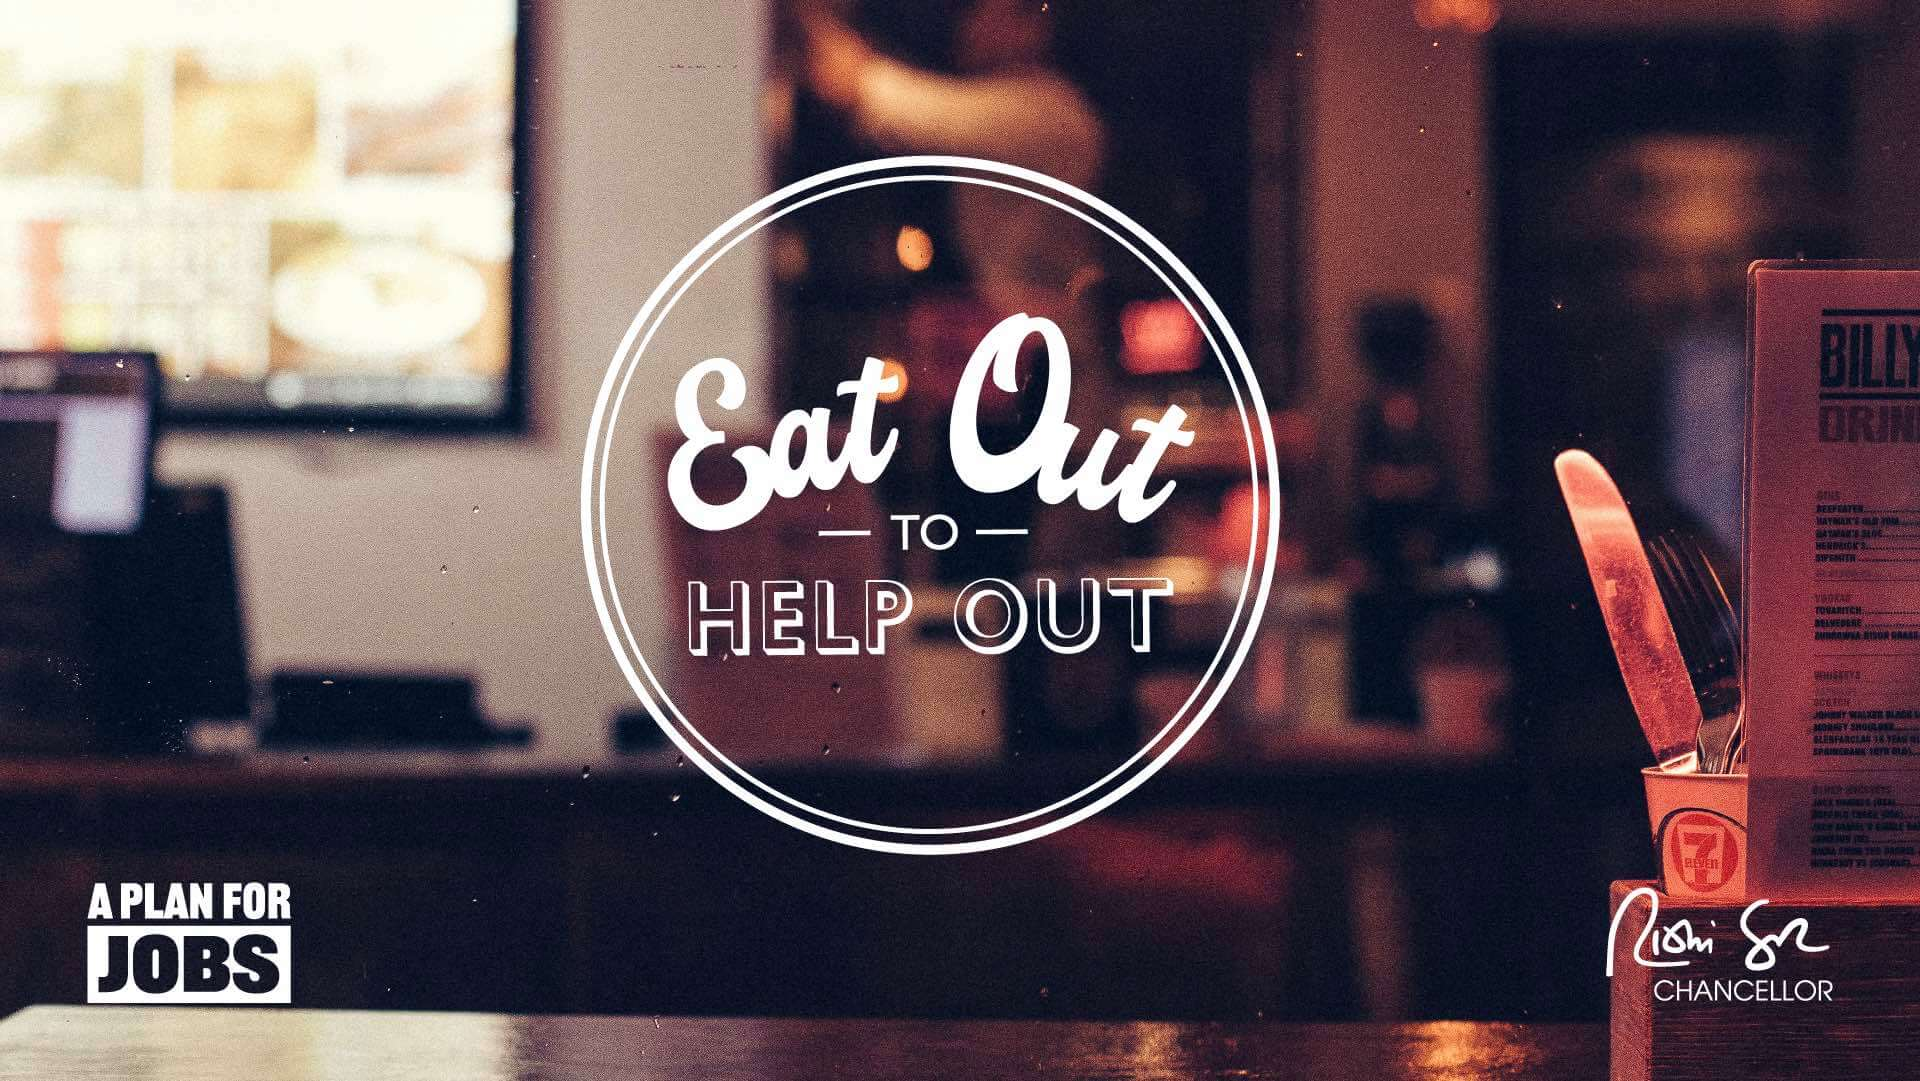 eat-out-help-out-scheme